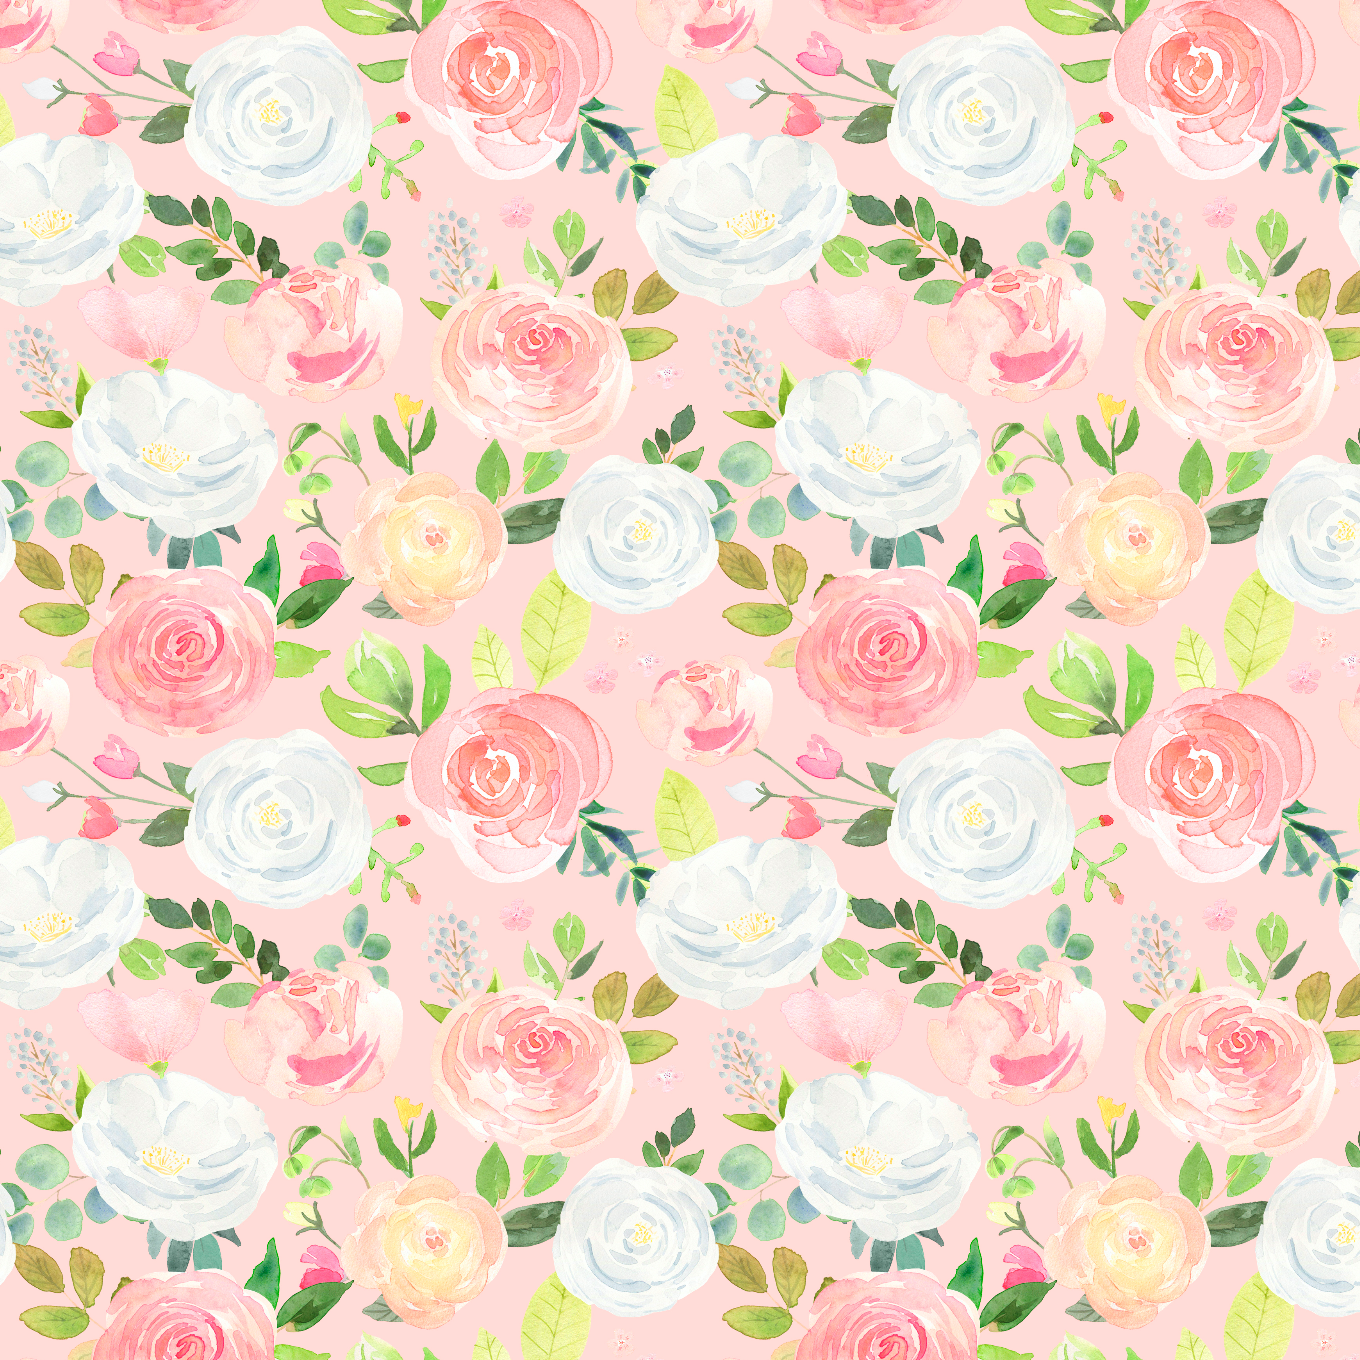 PRE ORDER Winter Blooms Large Pink - Digital Fabric Print